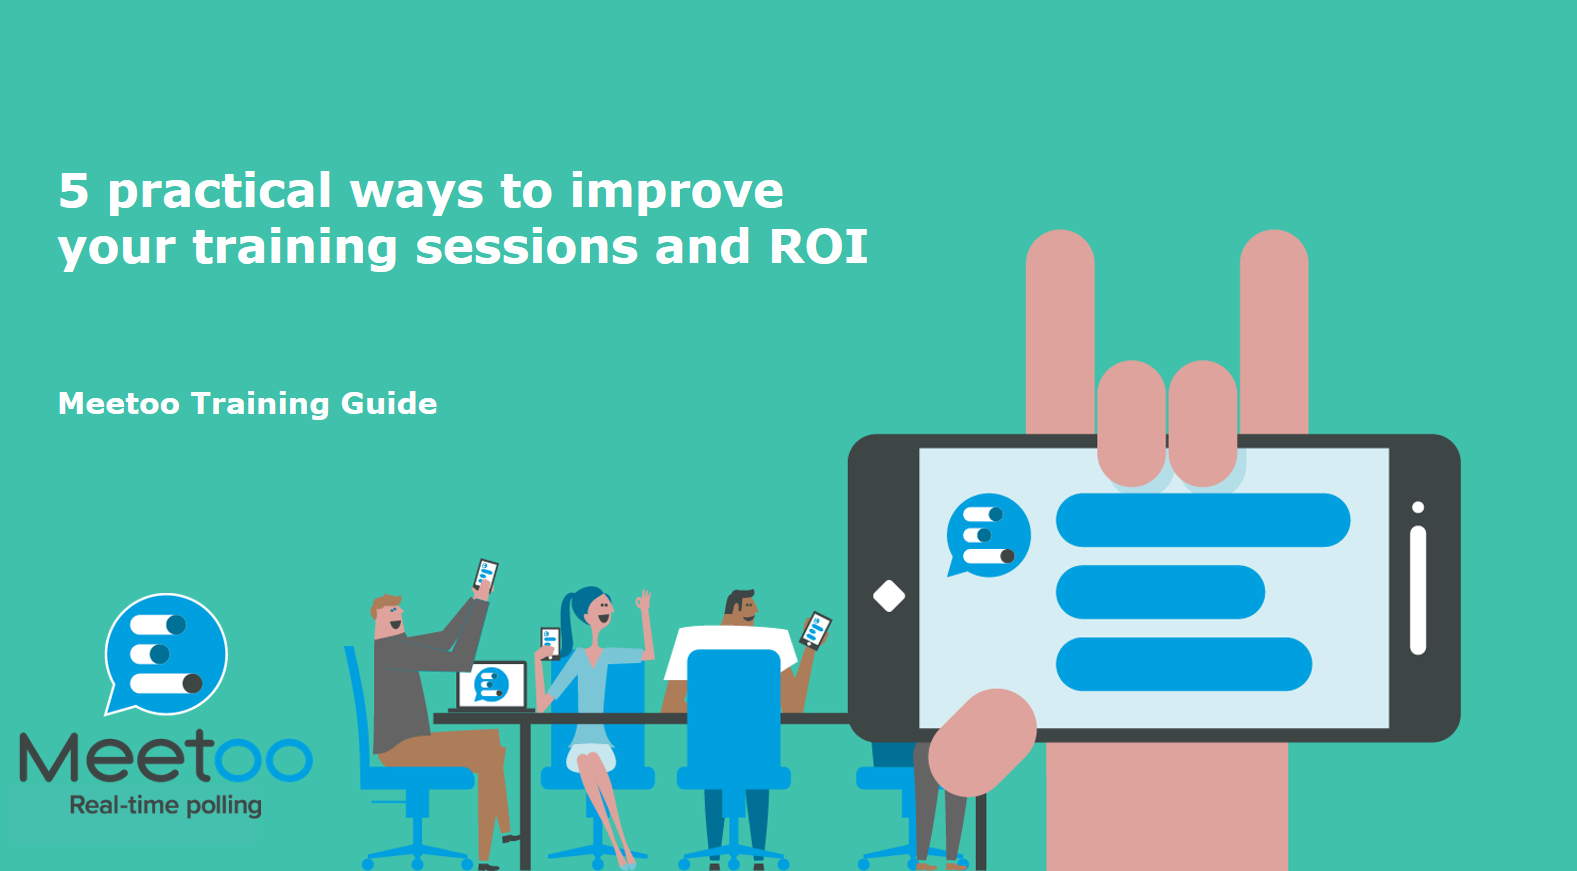 5 practical ways to improve your training sessions and ROI